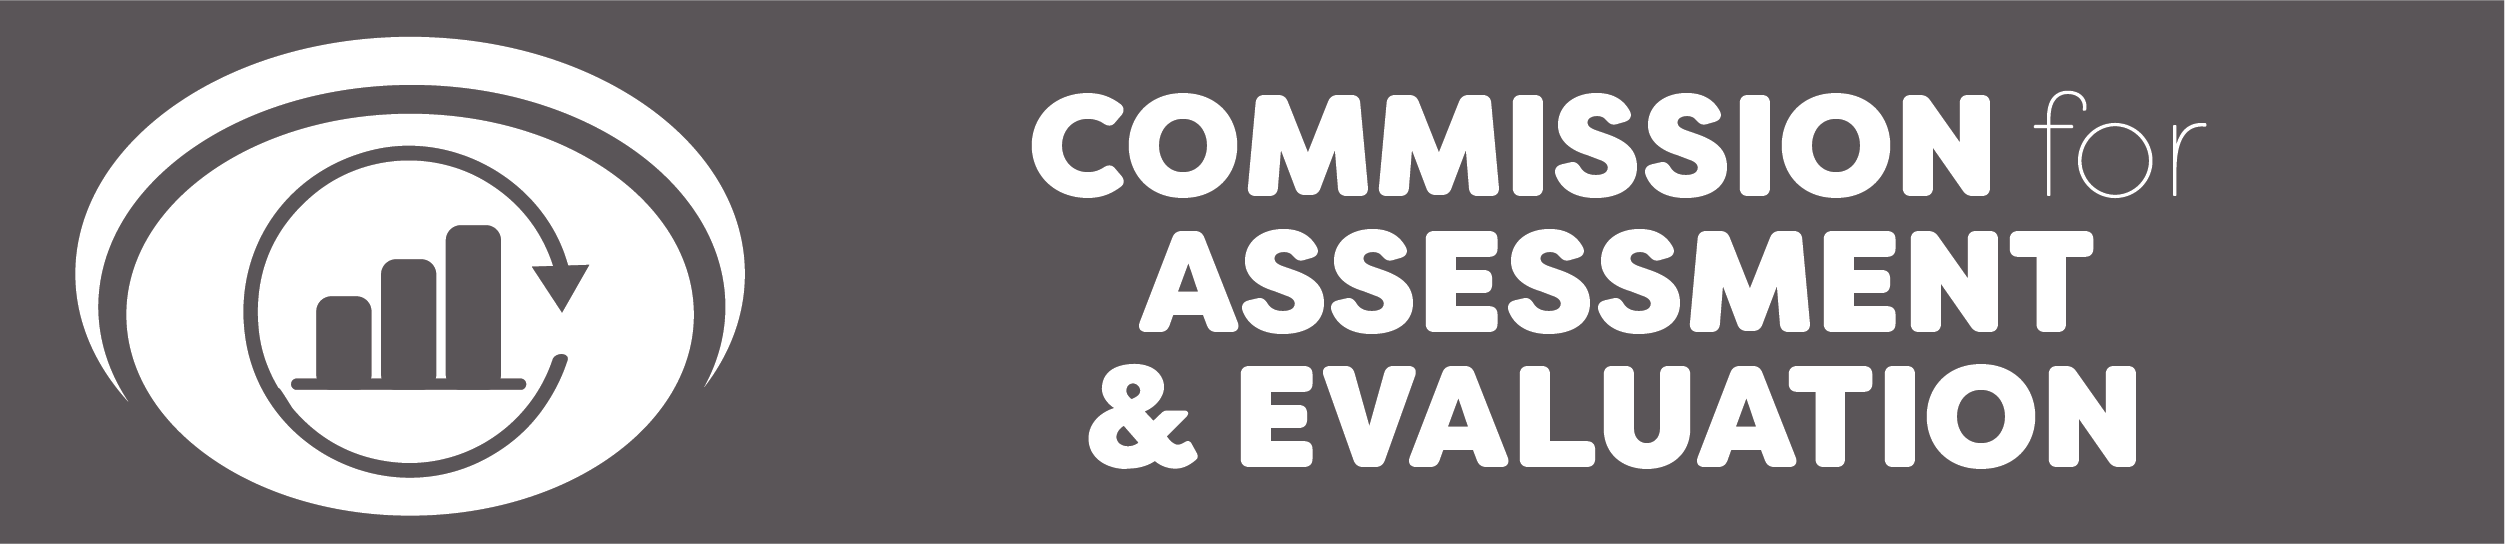 COMMISSION FOR ASSESSMENT & EVALUATION